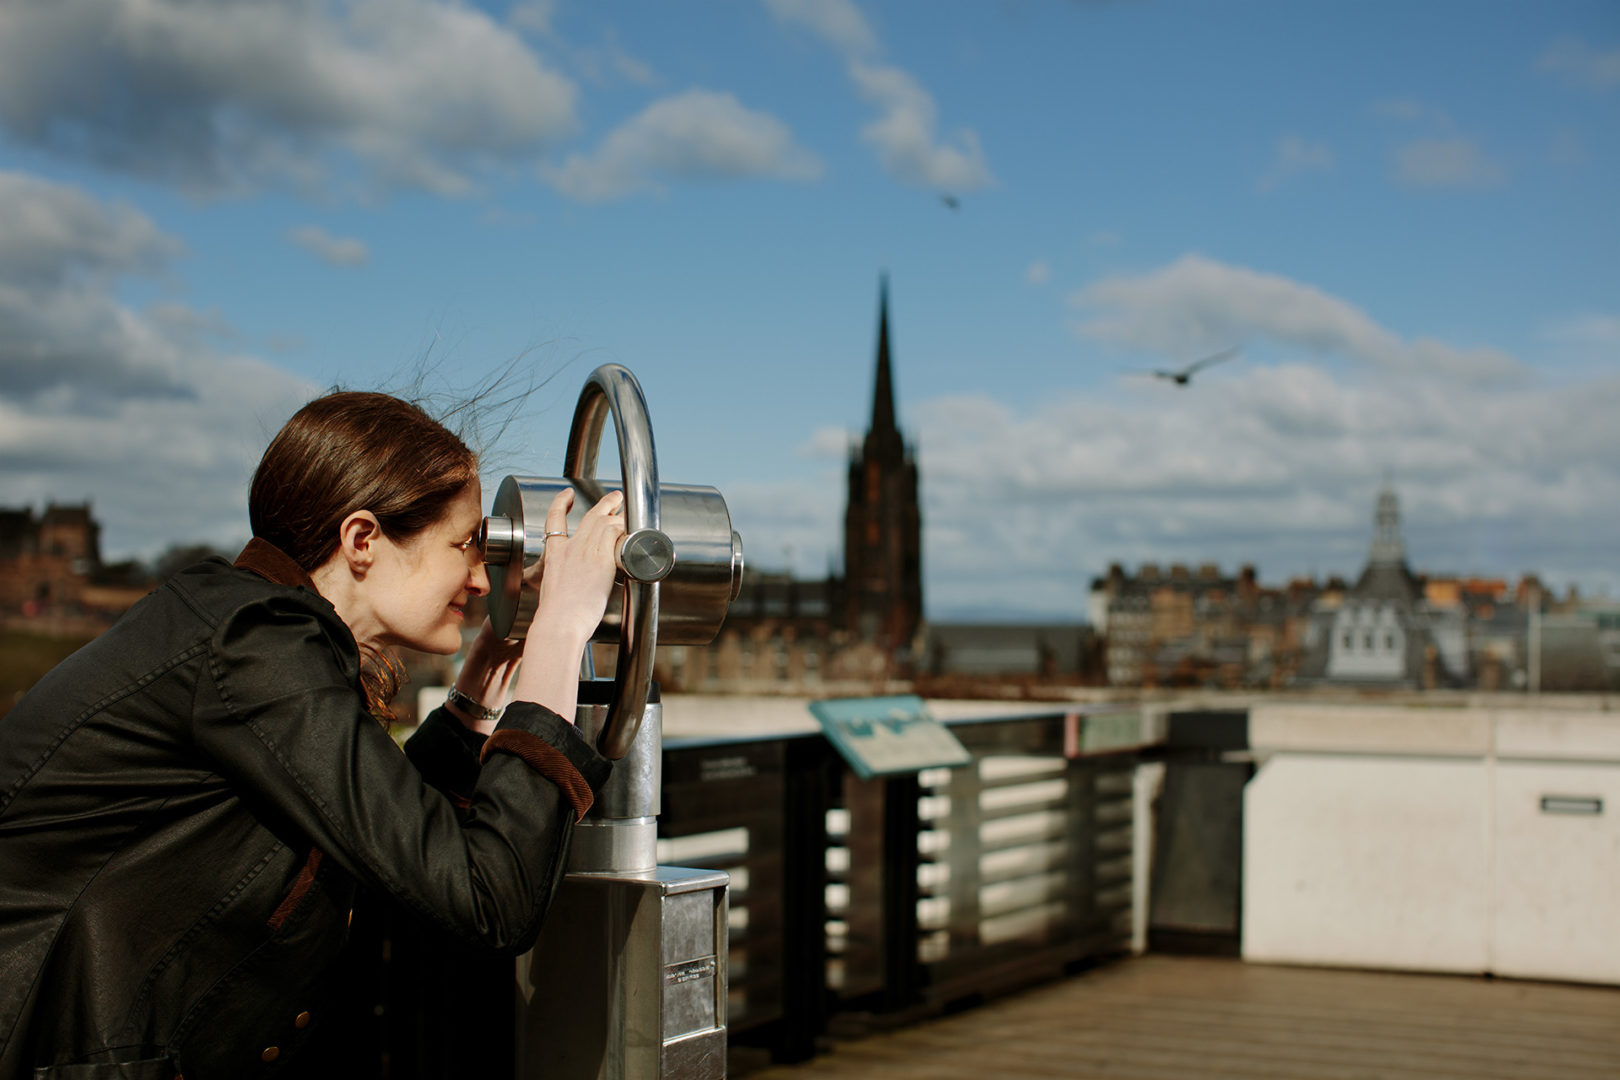 Capturing the Museum's rooftop experience